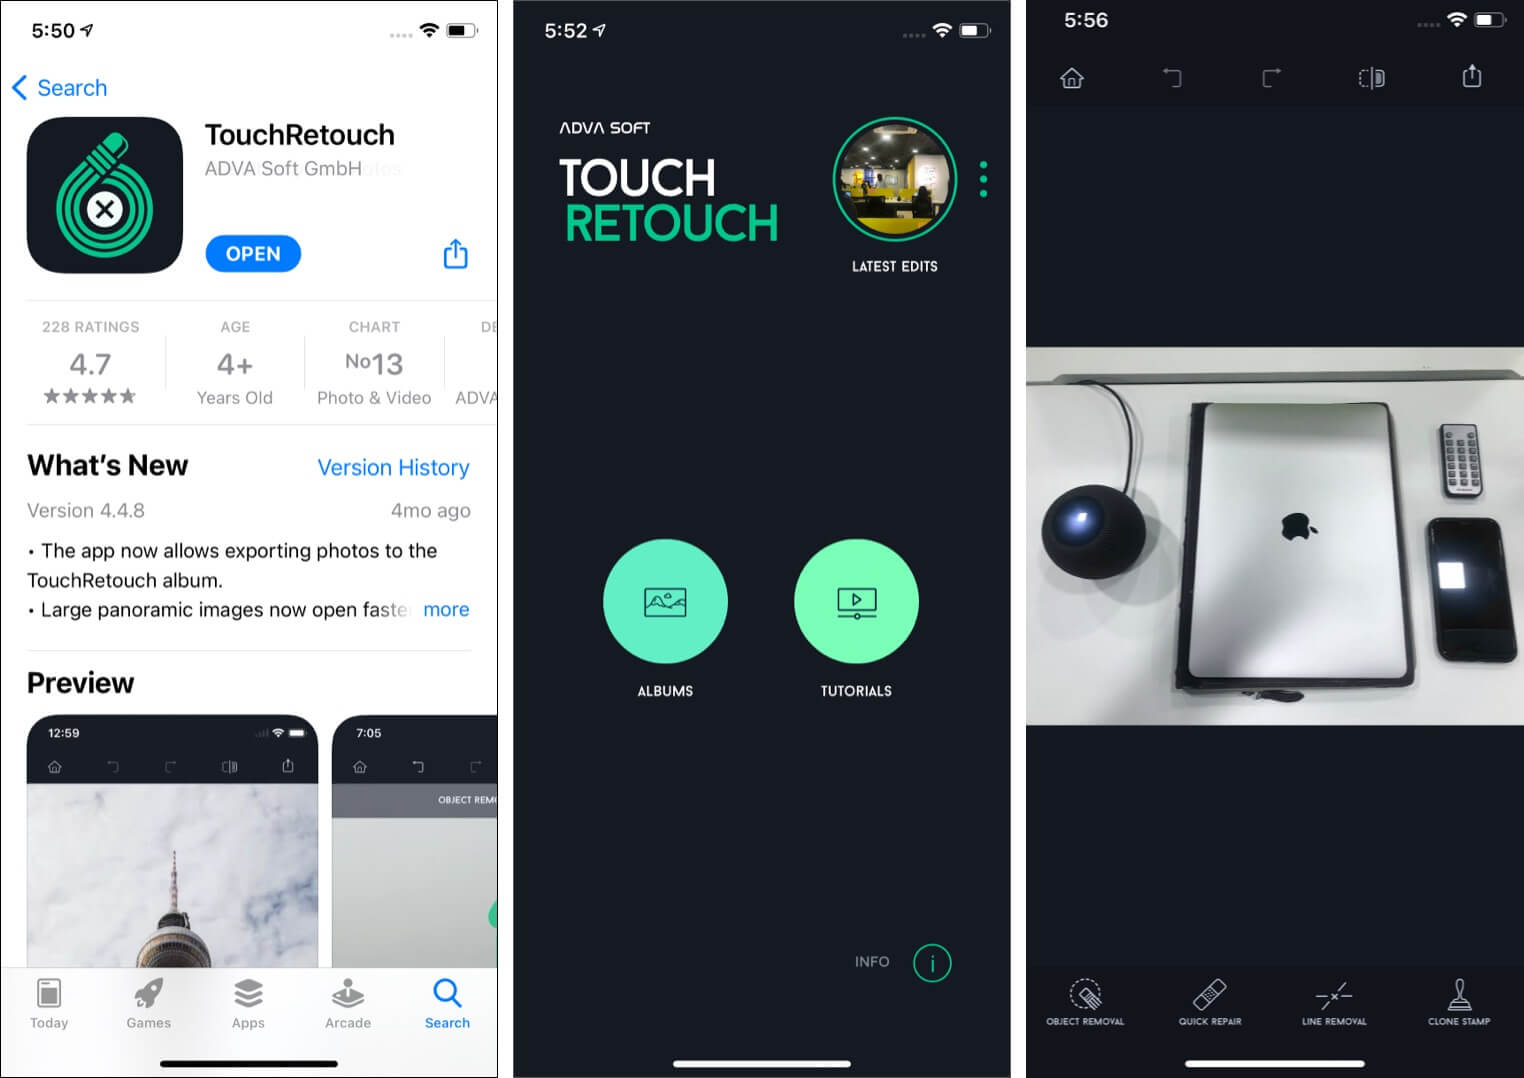 Features of TouchRetouch app on iPhone and iPad